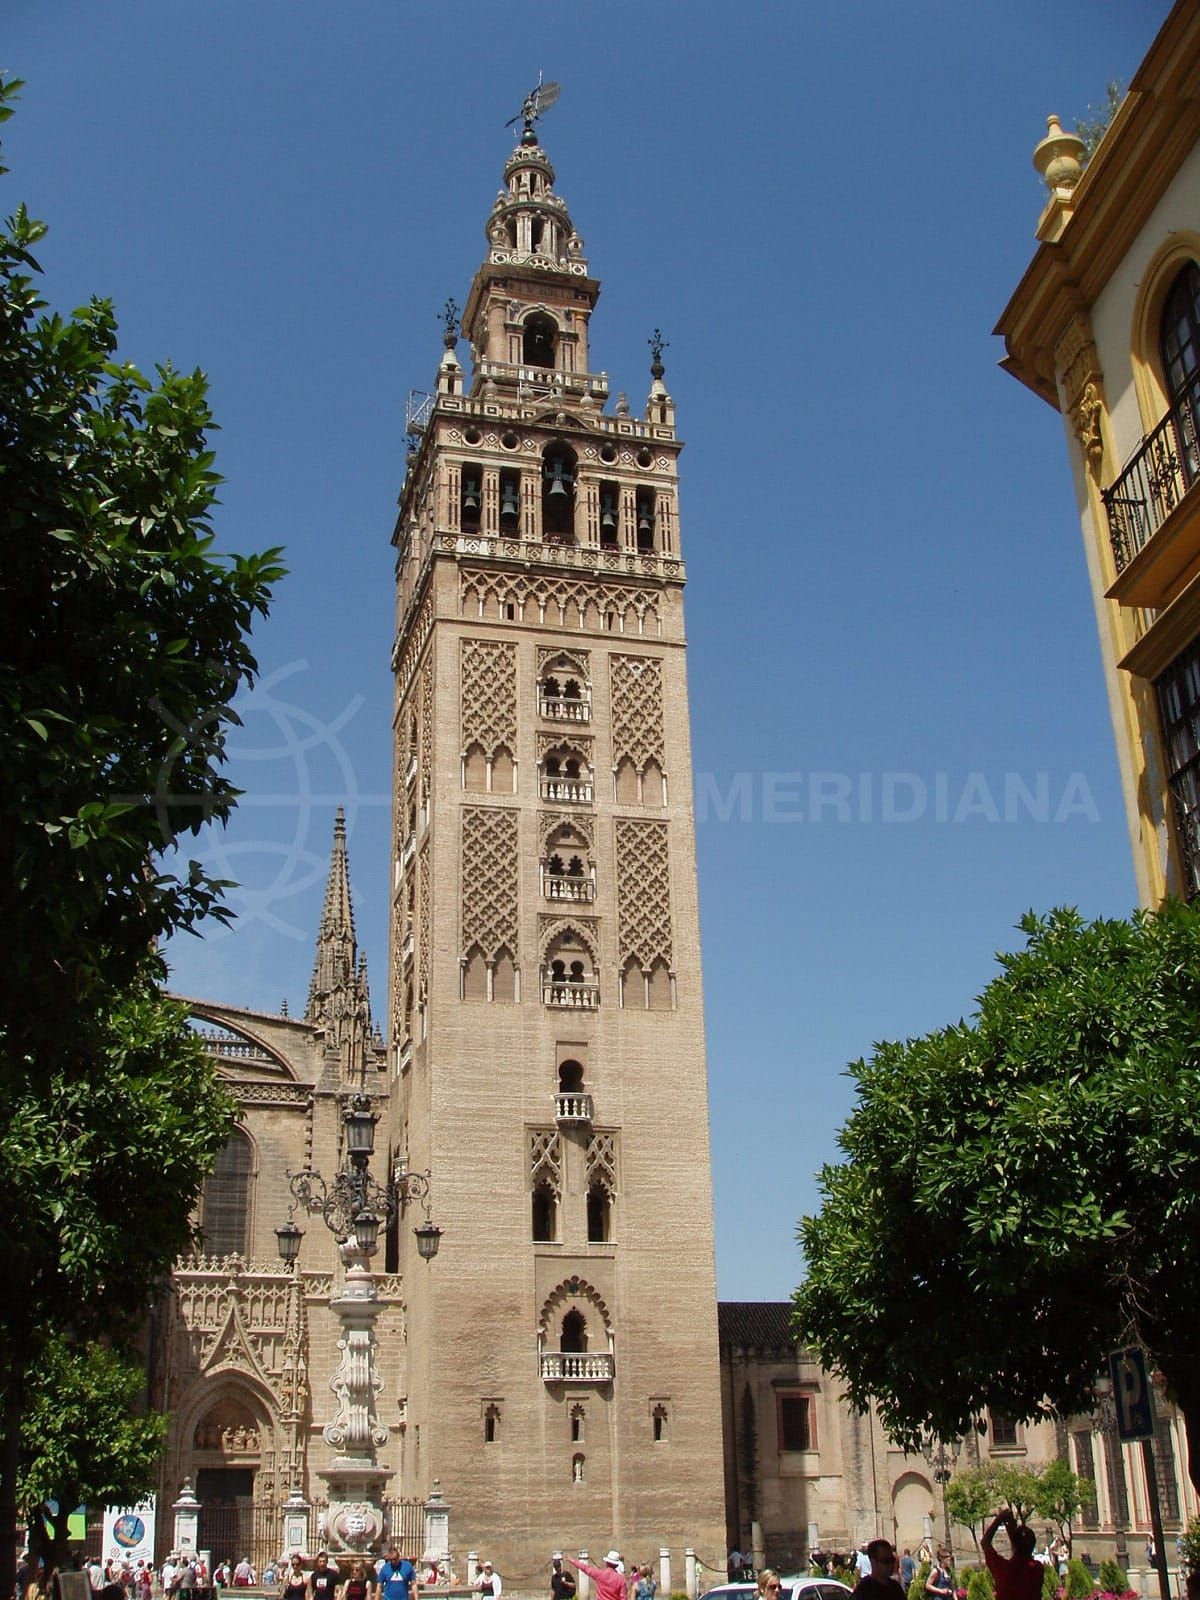 Seville: the heart of Andalucia